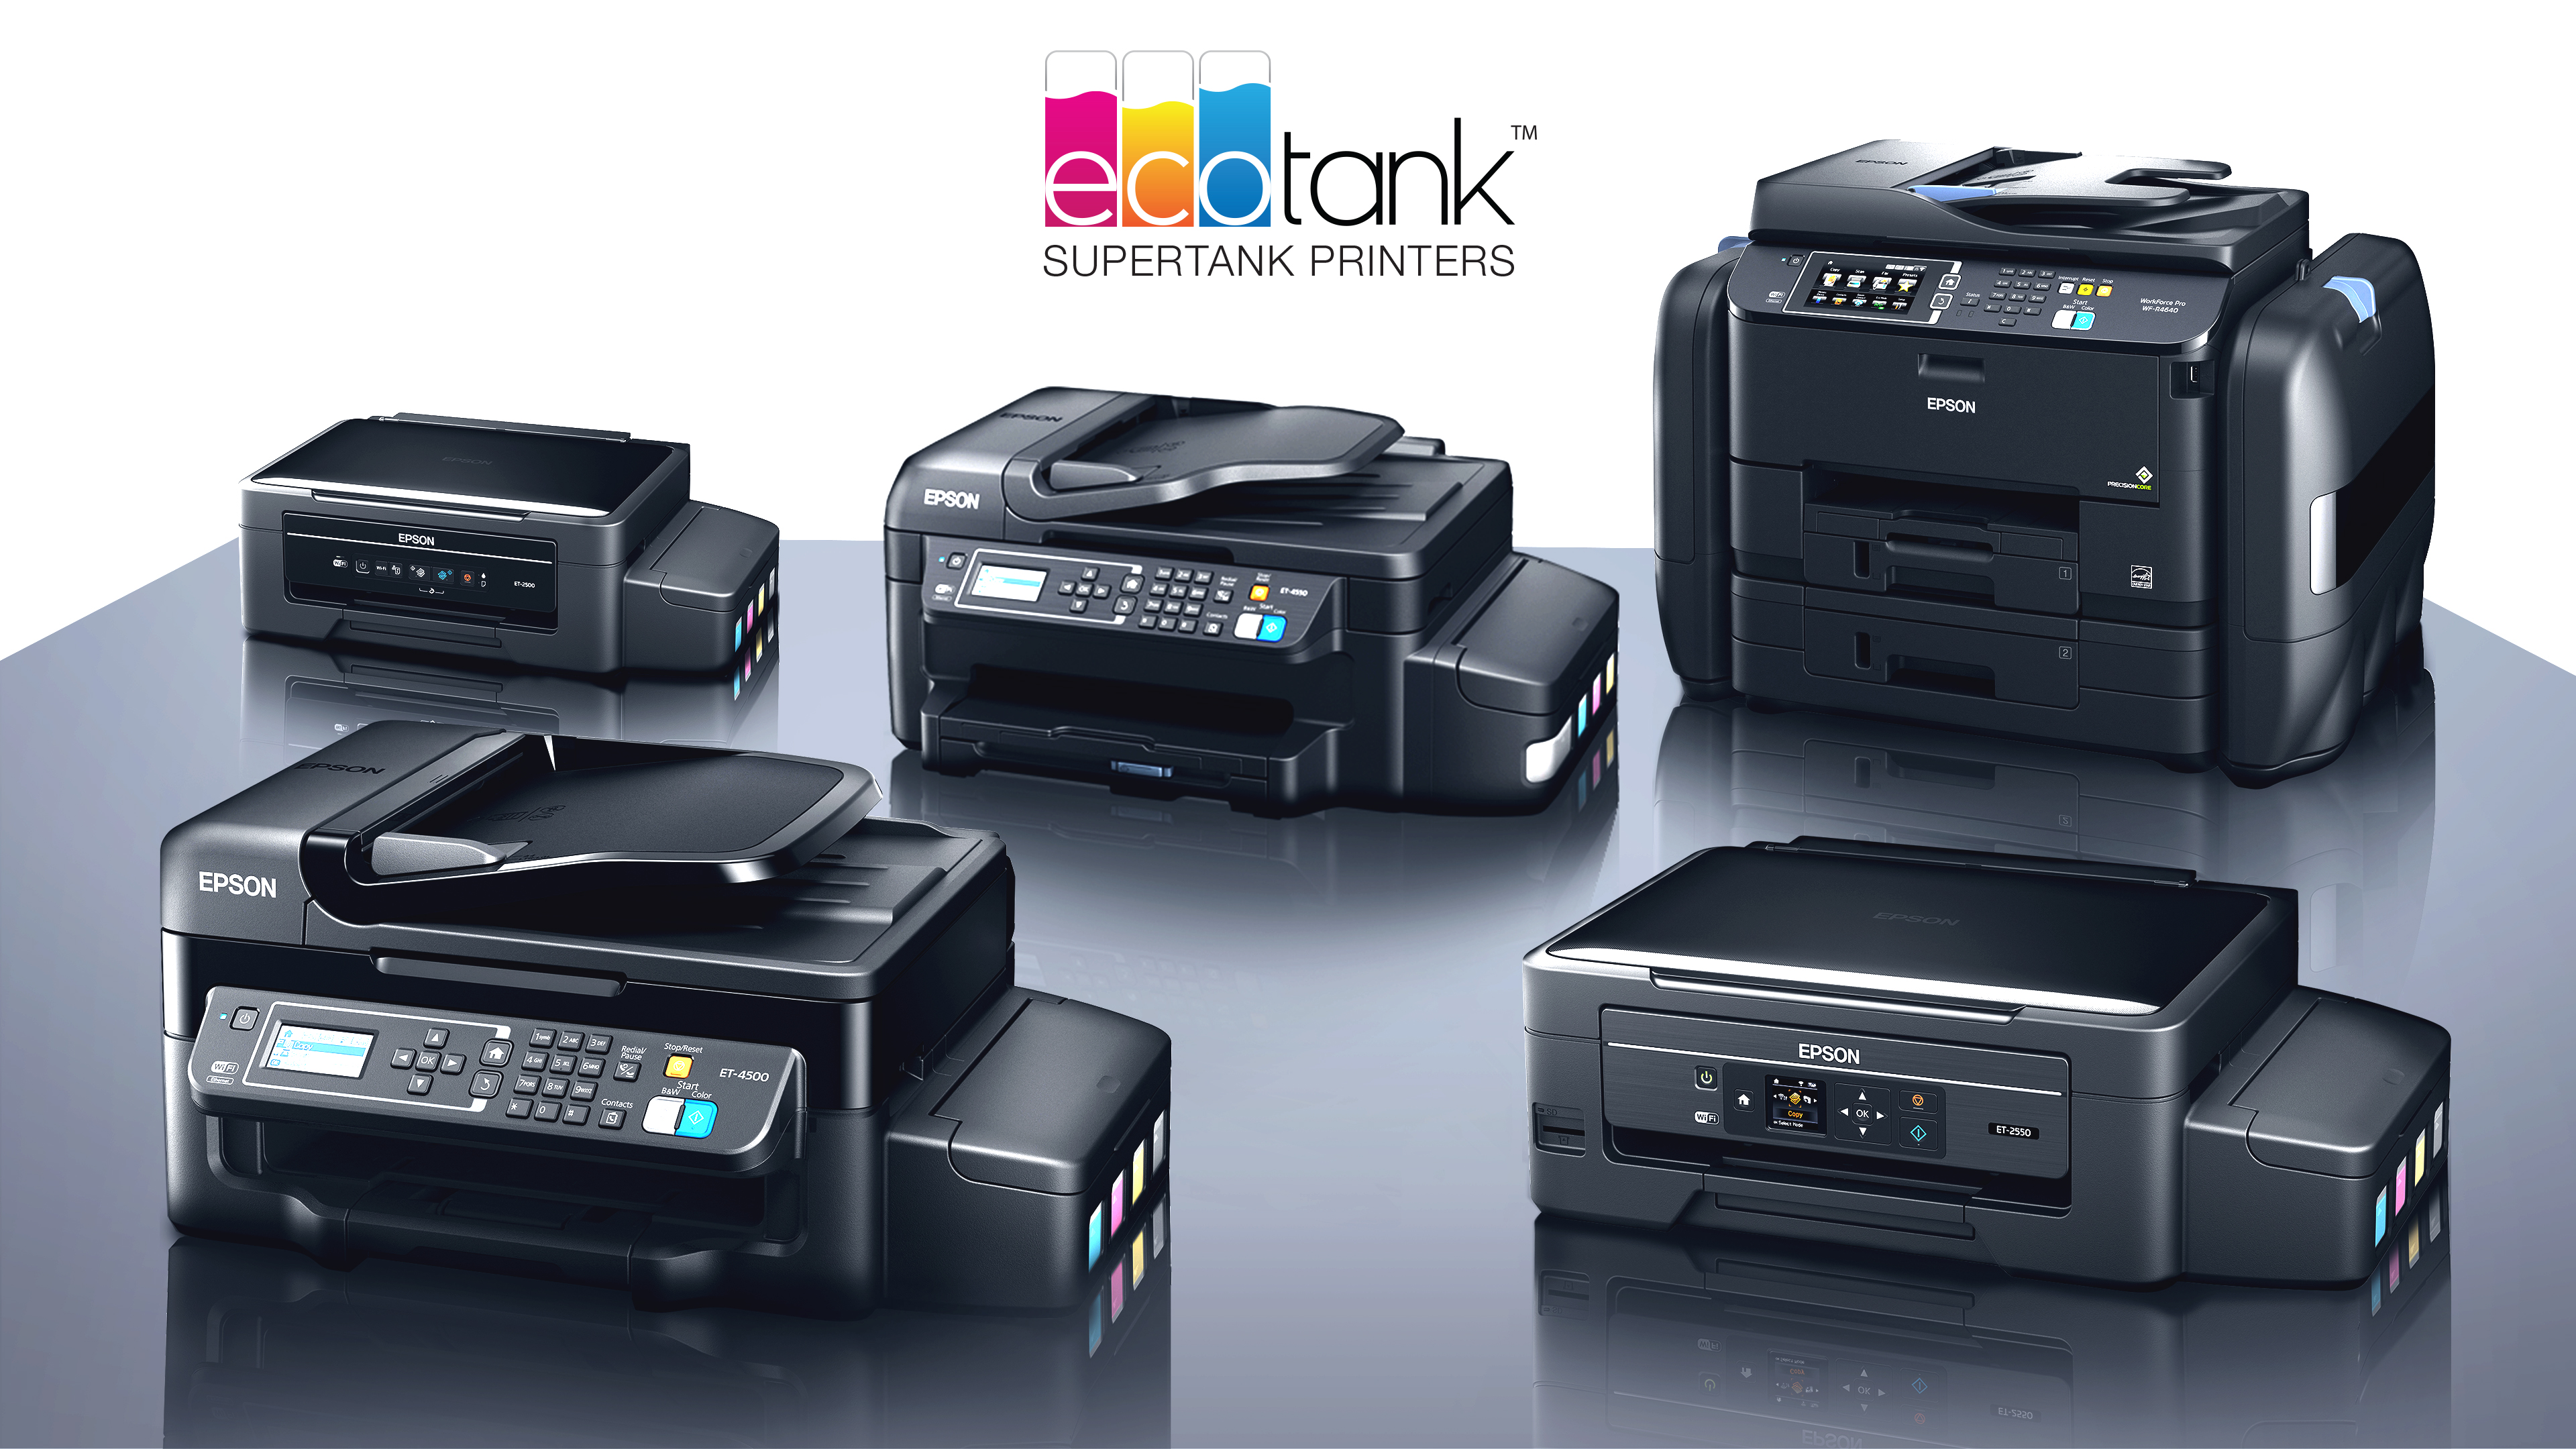 epson transforms printer category with ecotank loaded and ready to